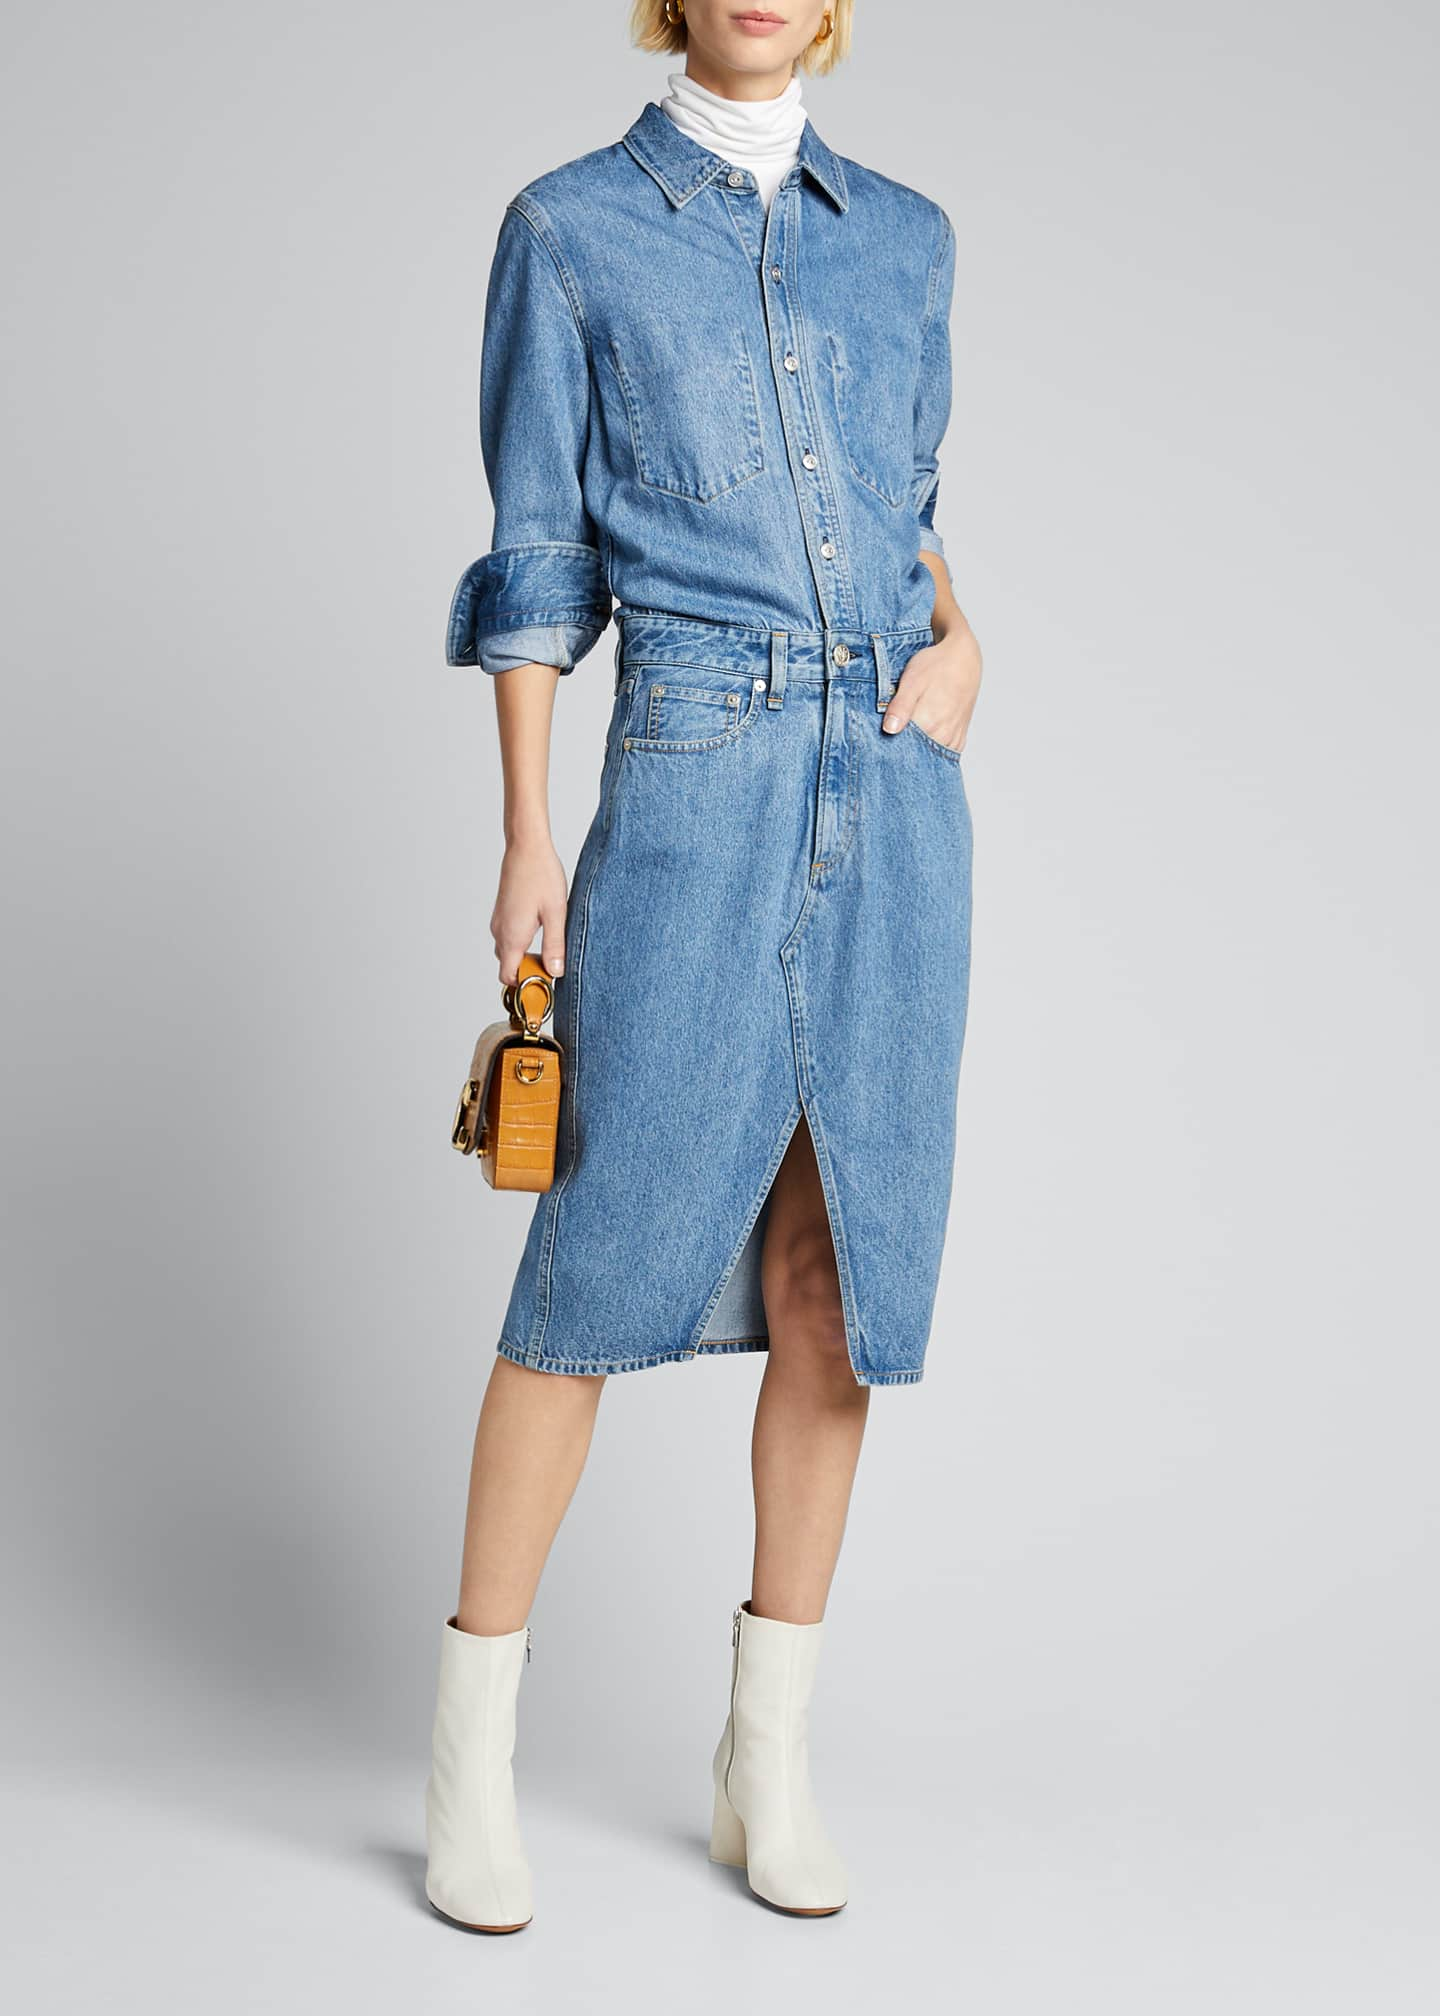 Rag & Bone All In One Denim Shirtdress